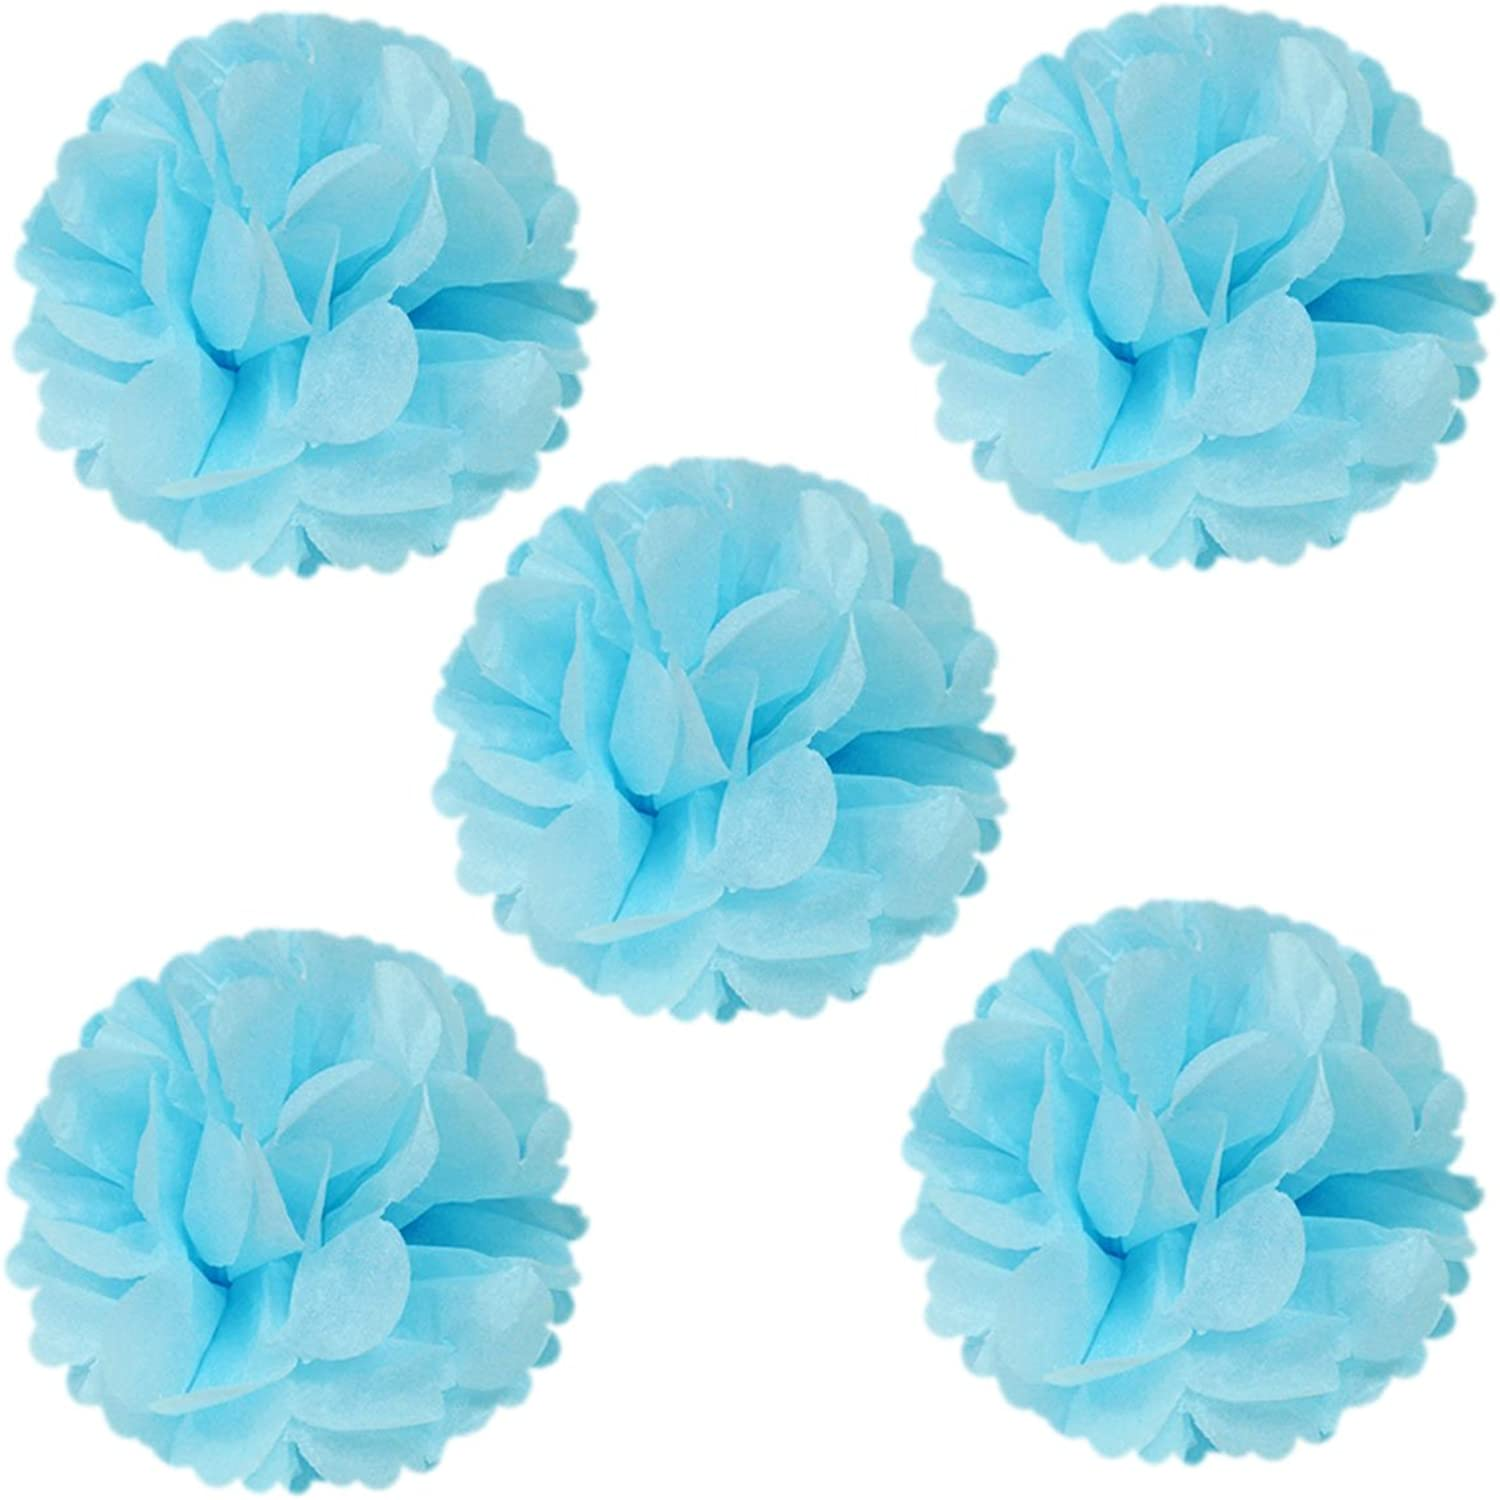 Allydrew 8  Set of 5 Tissue Pom Poms Party Decorations for Weddings, Birthday Parties Baby Showers and Nursery Décor, Light bluee